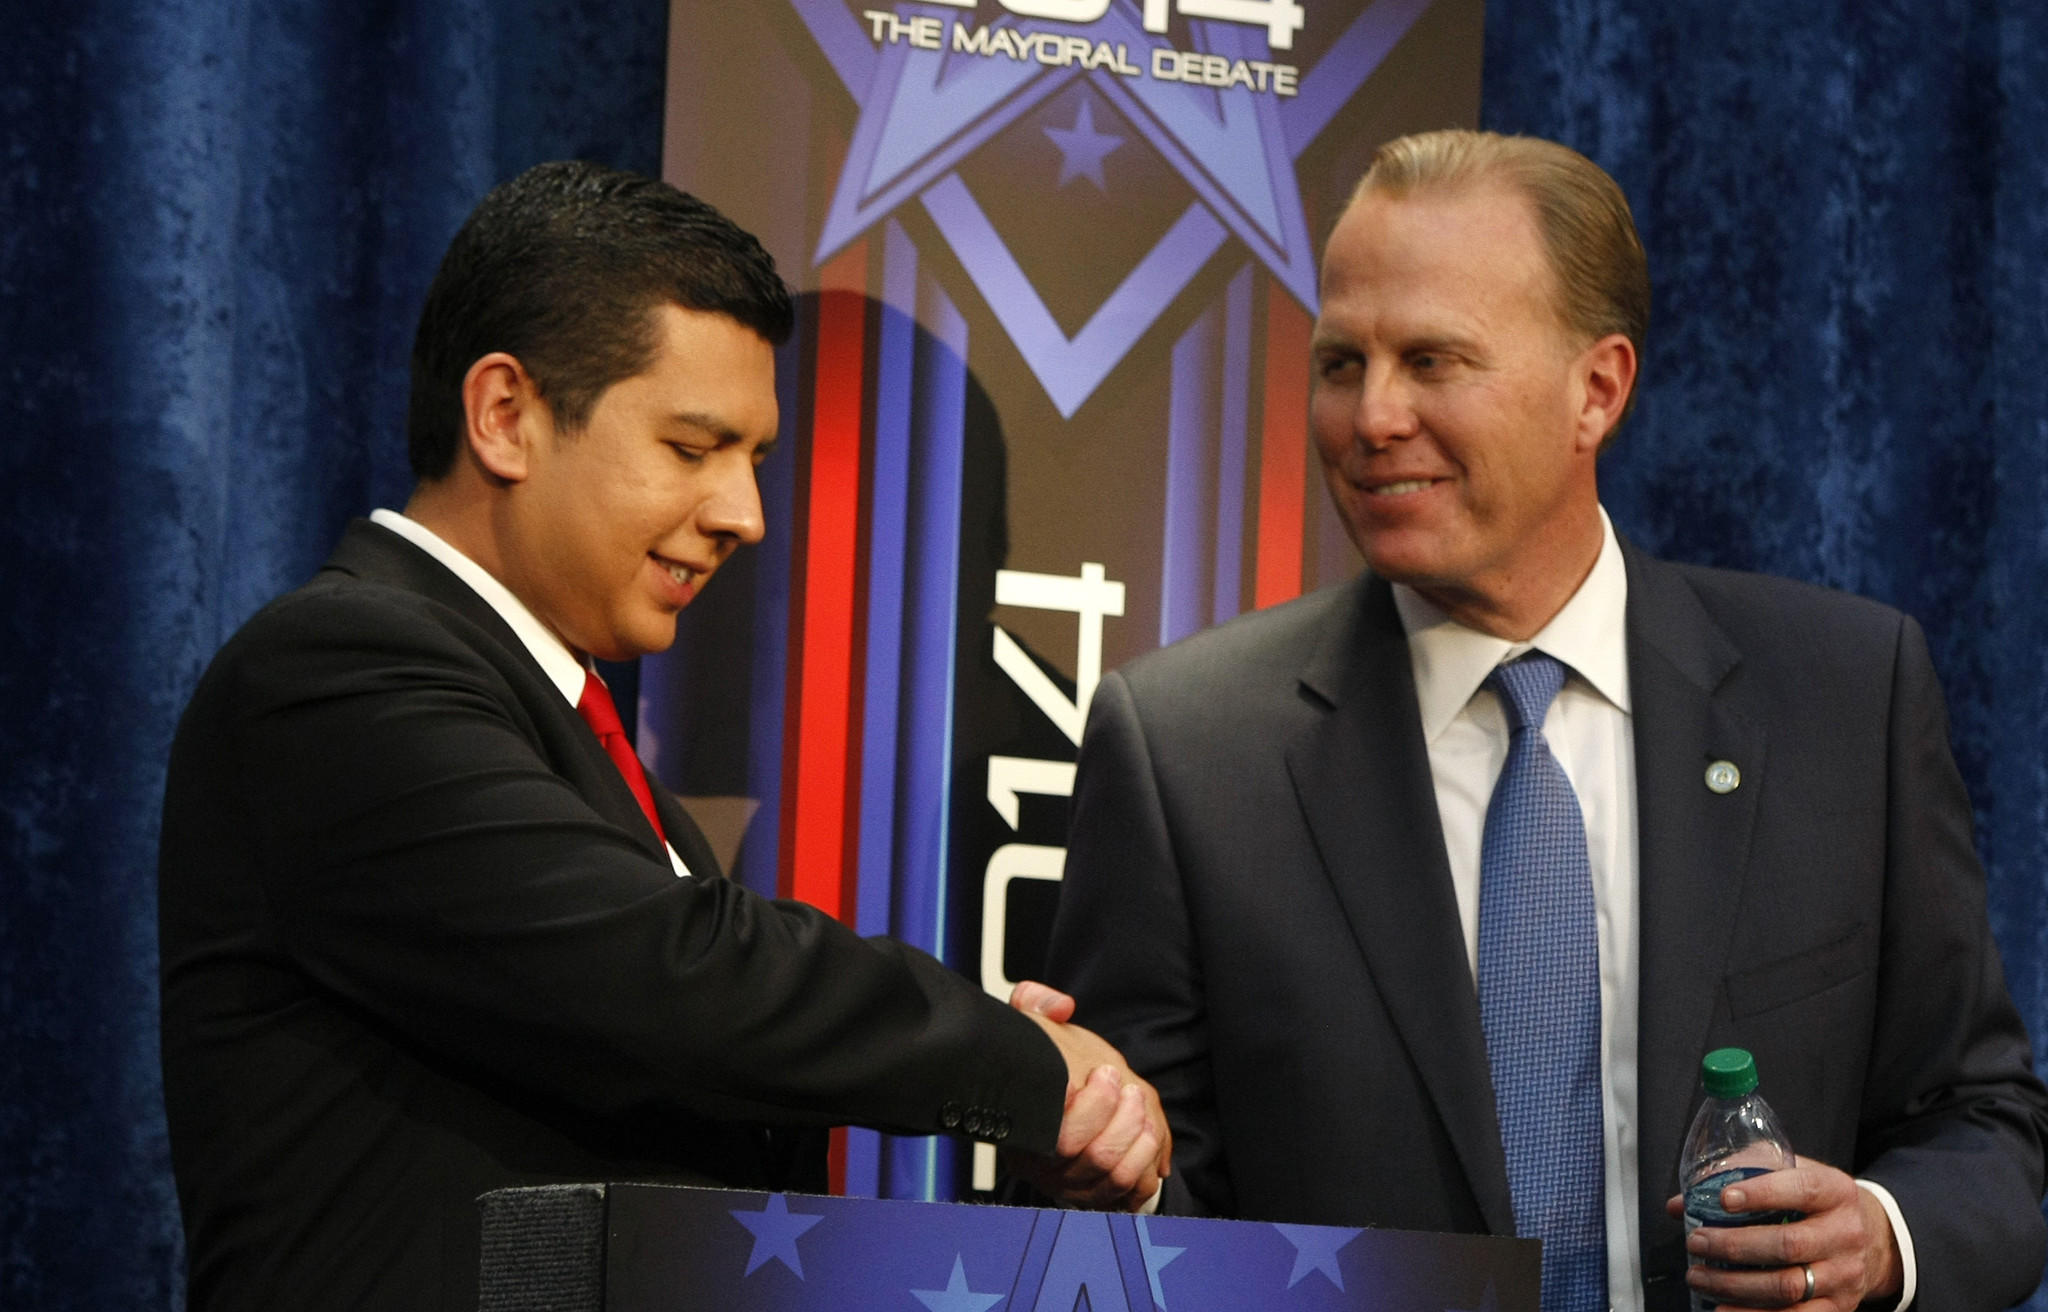 San Diego mayoral candidates David Alvarez, left, and Kevin Faulconer shake hands after a contentious debate. The runoff will decide a replacement for ex-mayor Bob Filner.